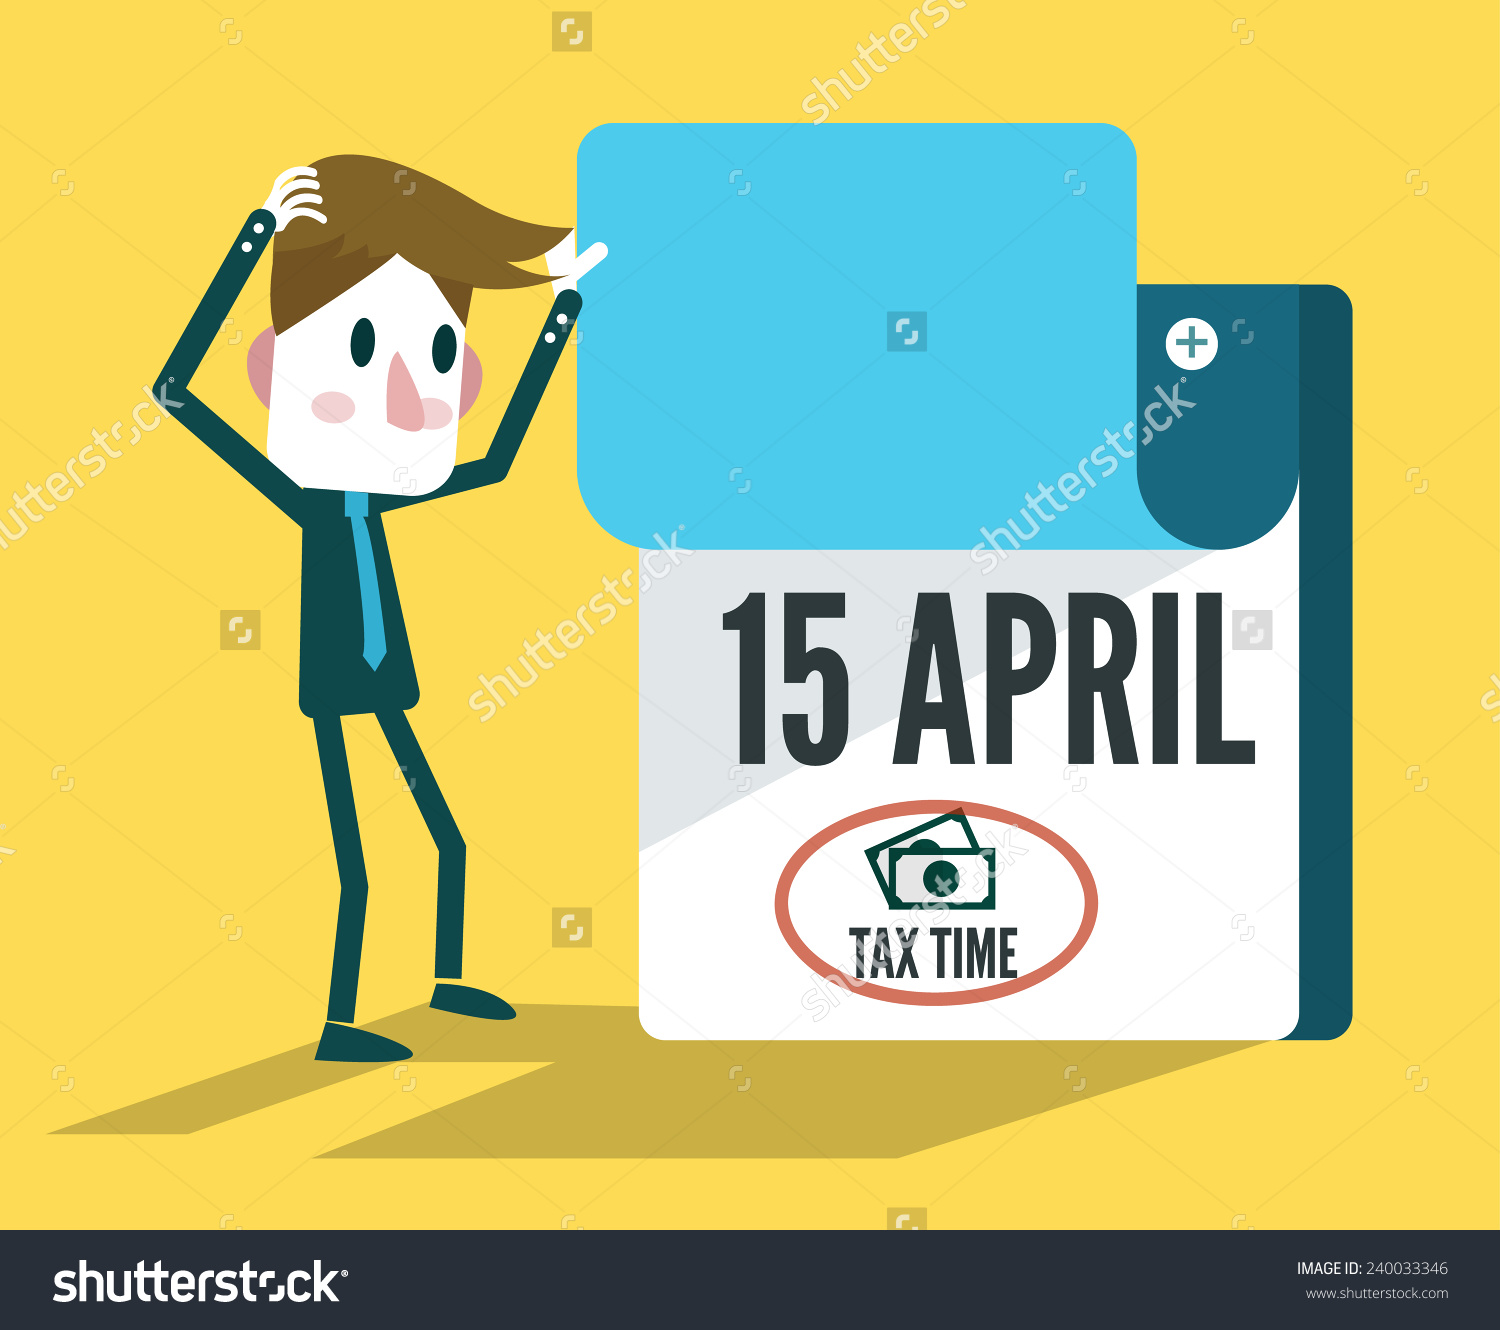 Tax Time Calendar Flat Design Elements Stock Vector 240033346.